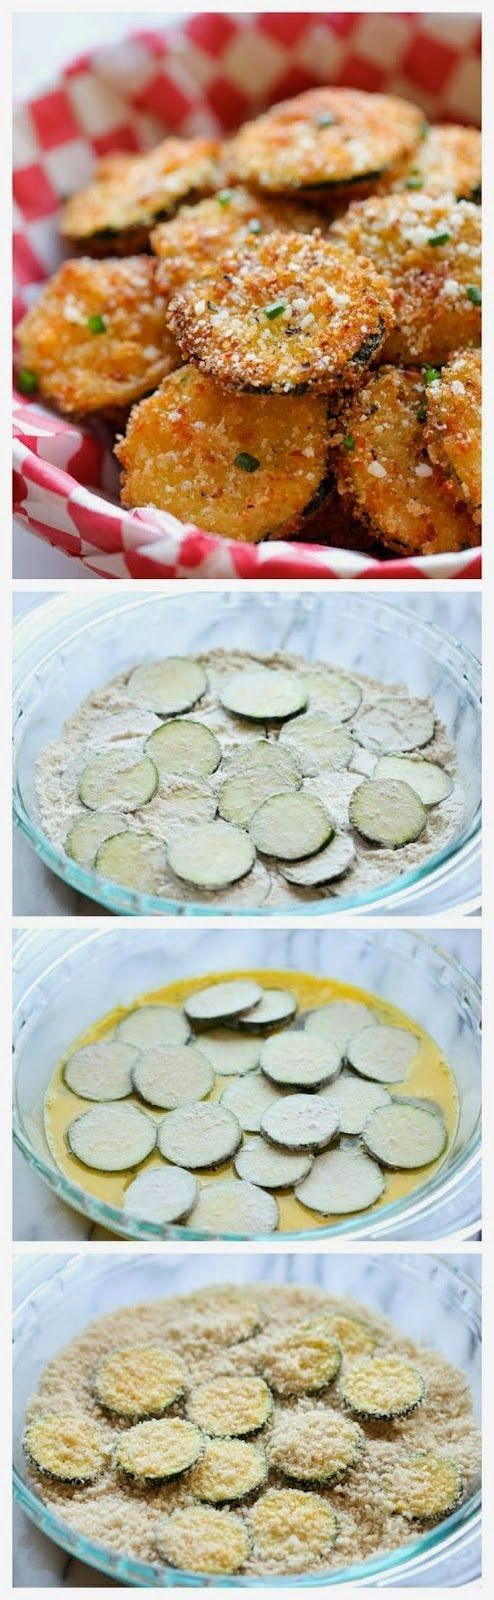 Try this link. Zucchini Parmesan Crisps http://www.foodnetwork.com/recipes/ellie-krieger/zucchini-parmesan-crisps-recipe.html